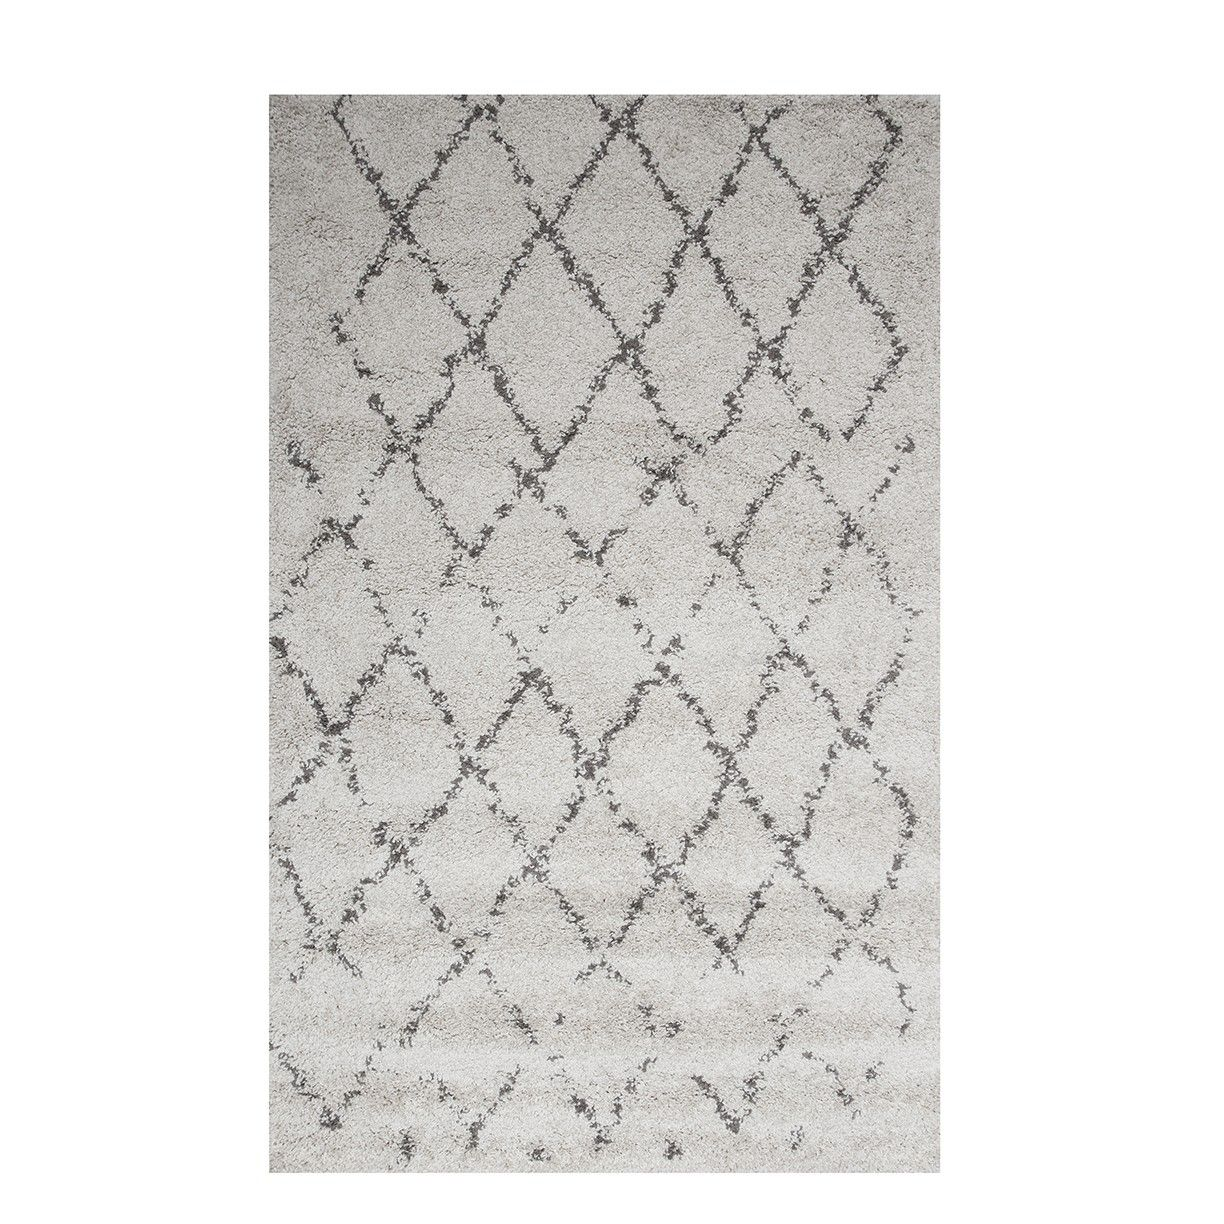 Large Trellis Cream Shaggy Rug Moroccan | The Rug House | Wool ...